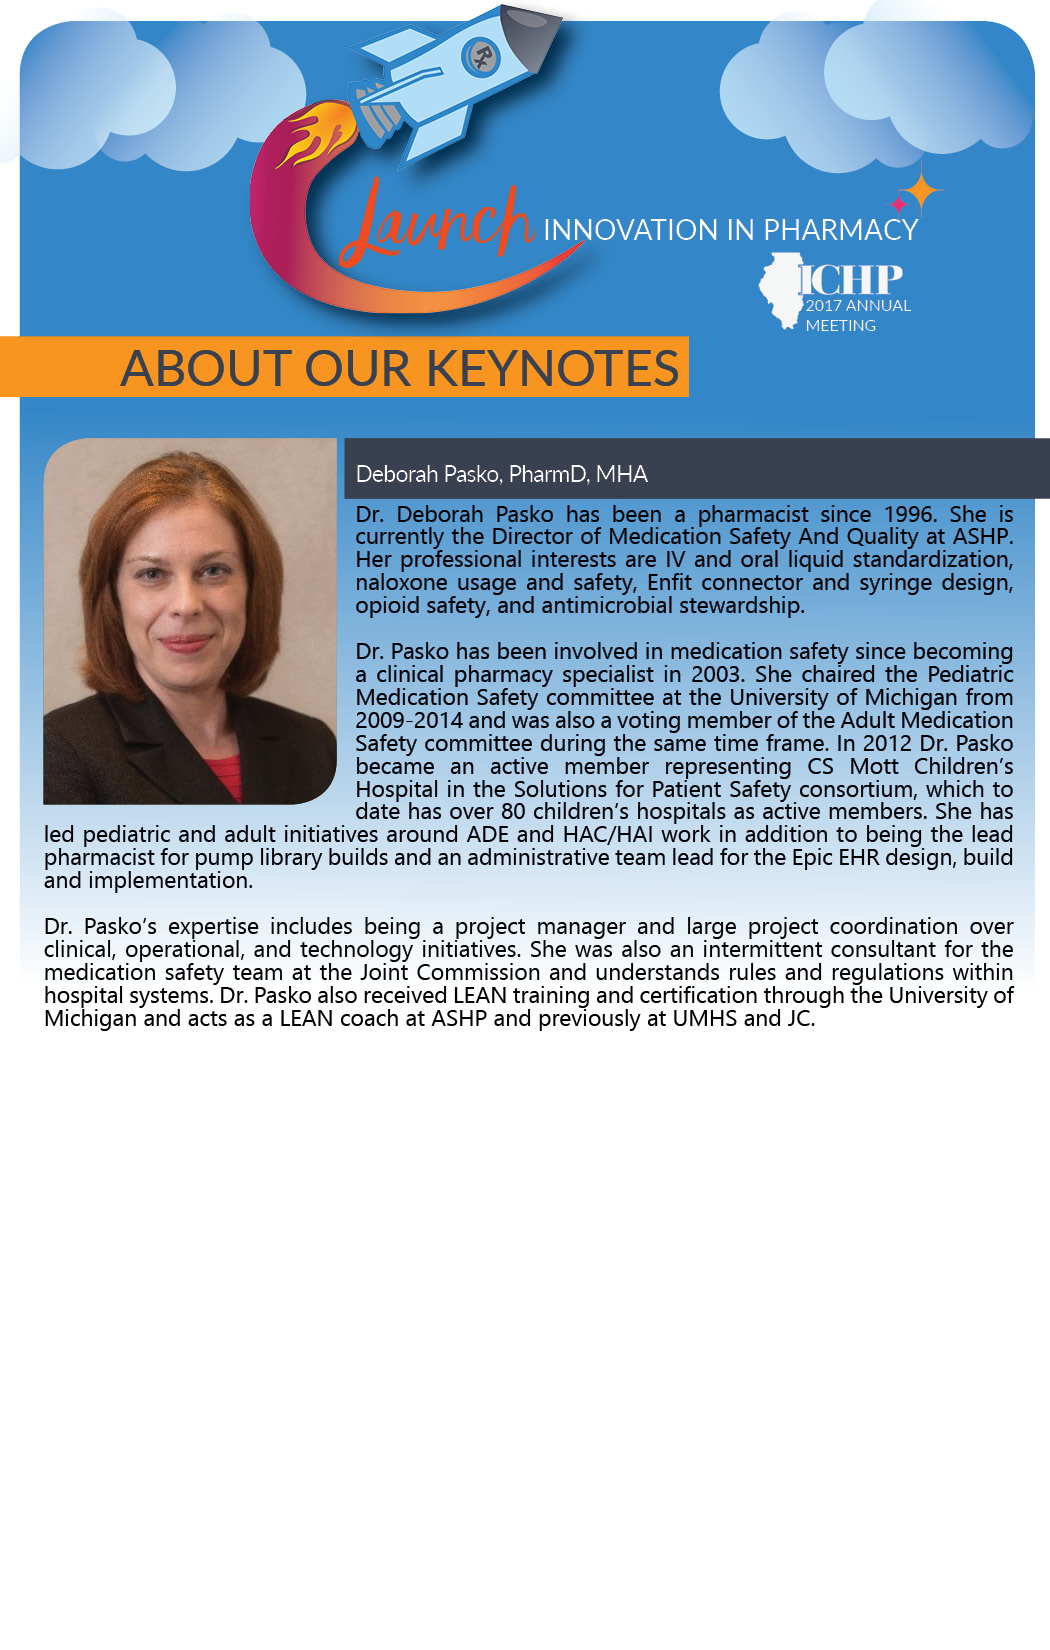 More about the ICHP 2017 Annual Meeting